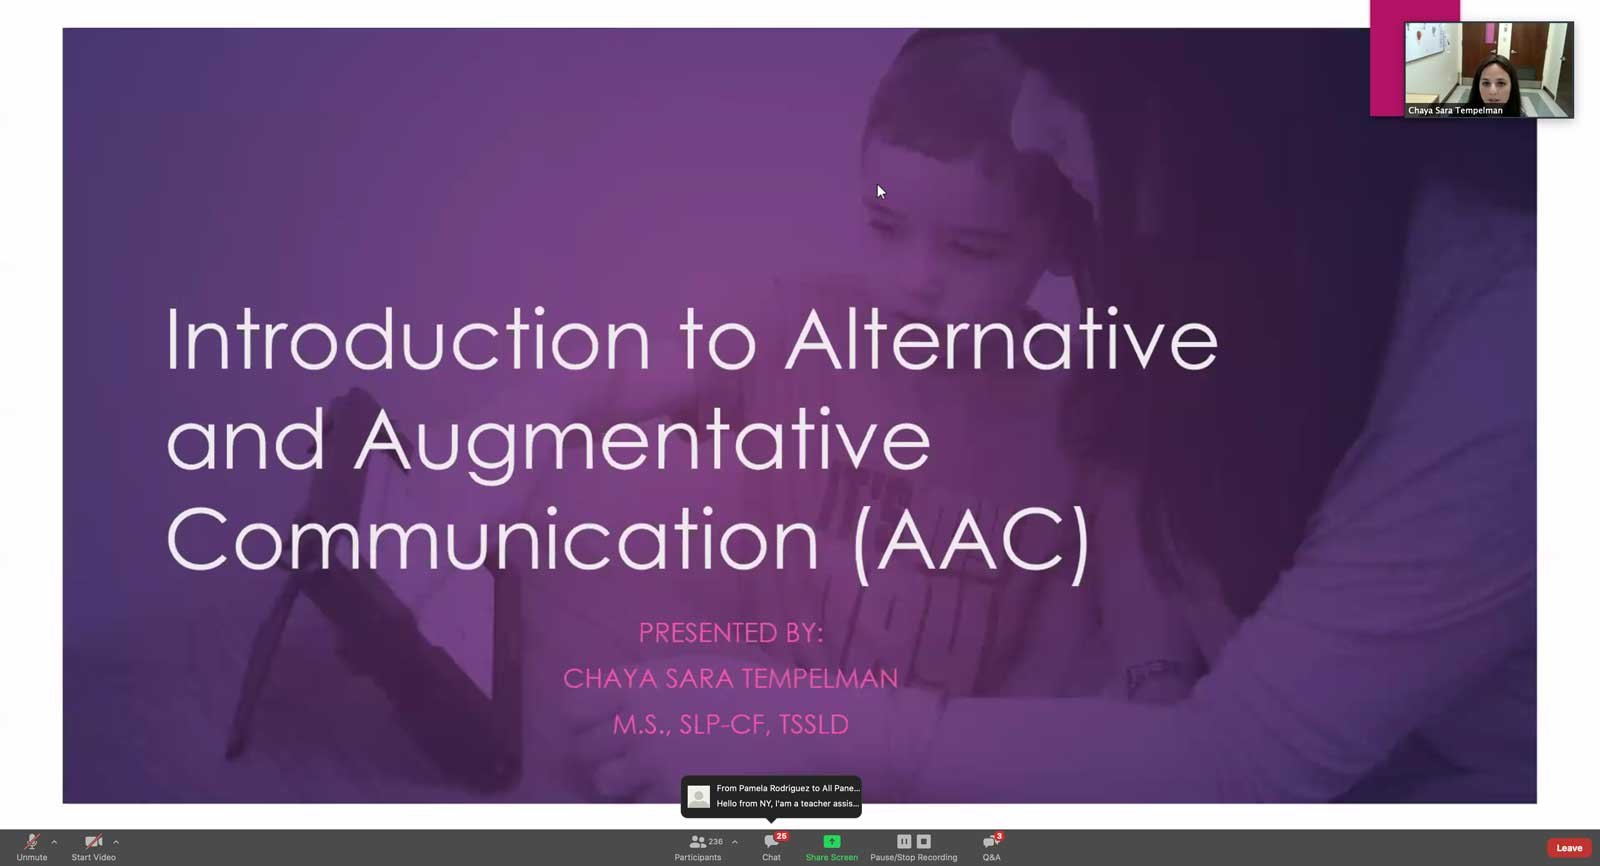 Chaya Sara Templeman, SLP-CF, TSSLD Presenting Workshop on Augmentative Alternative Communication